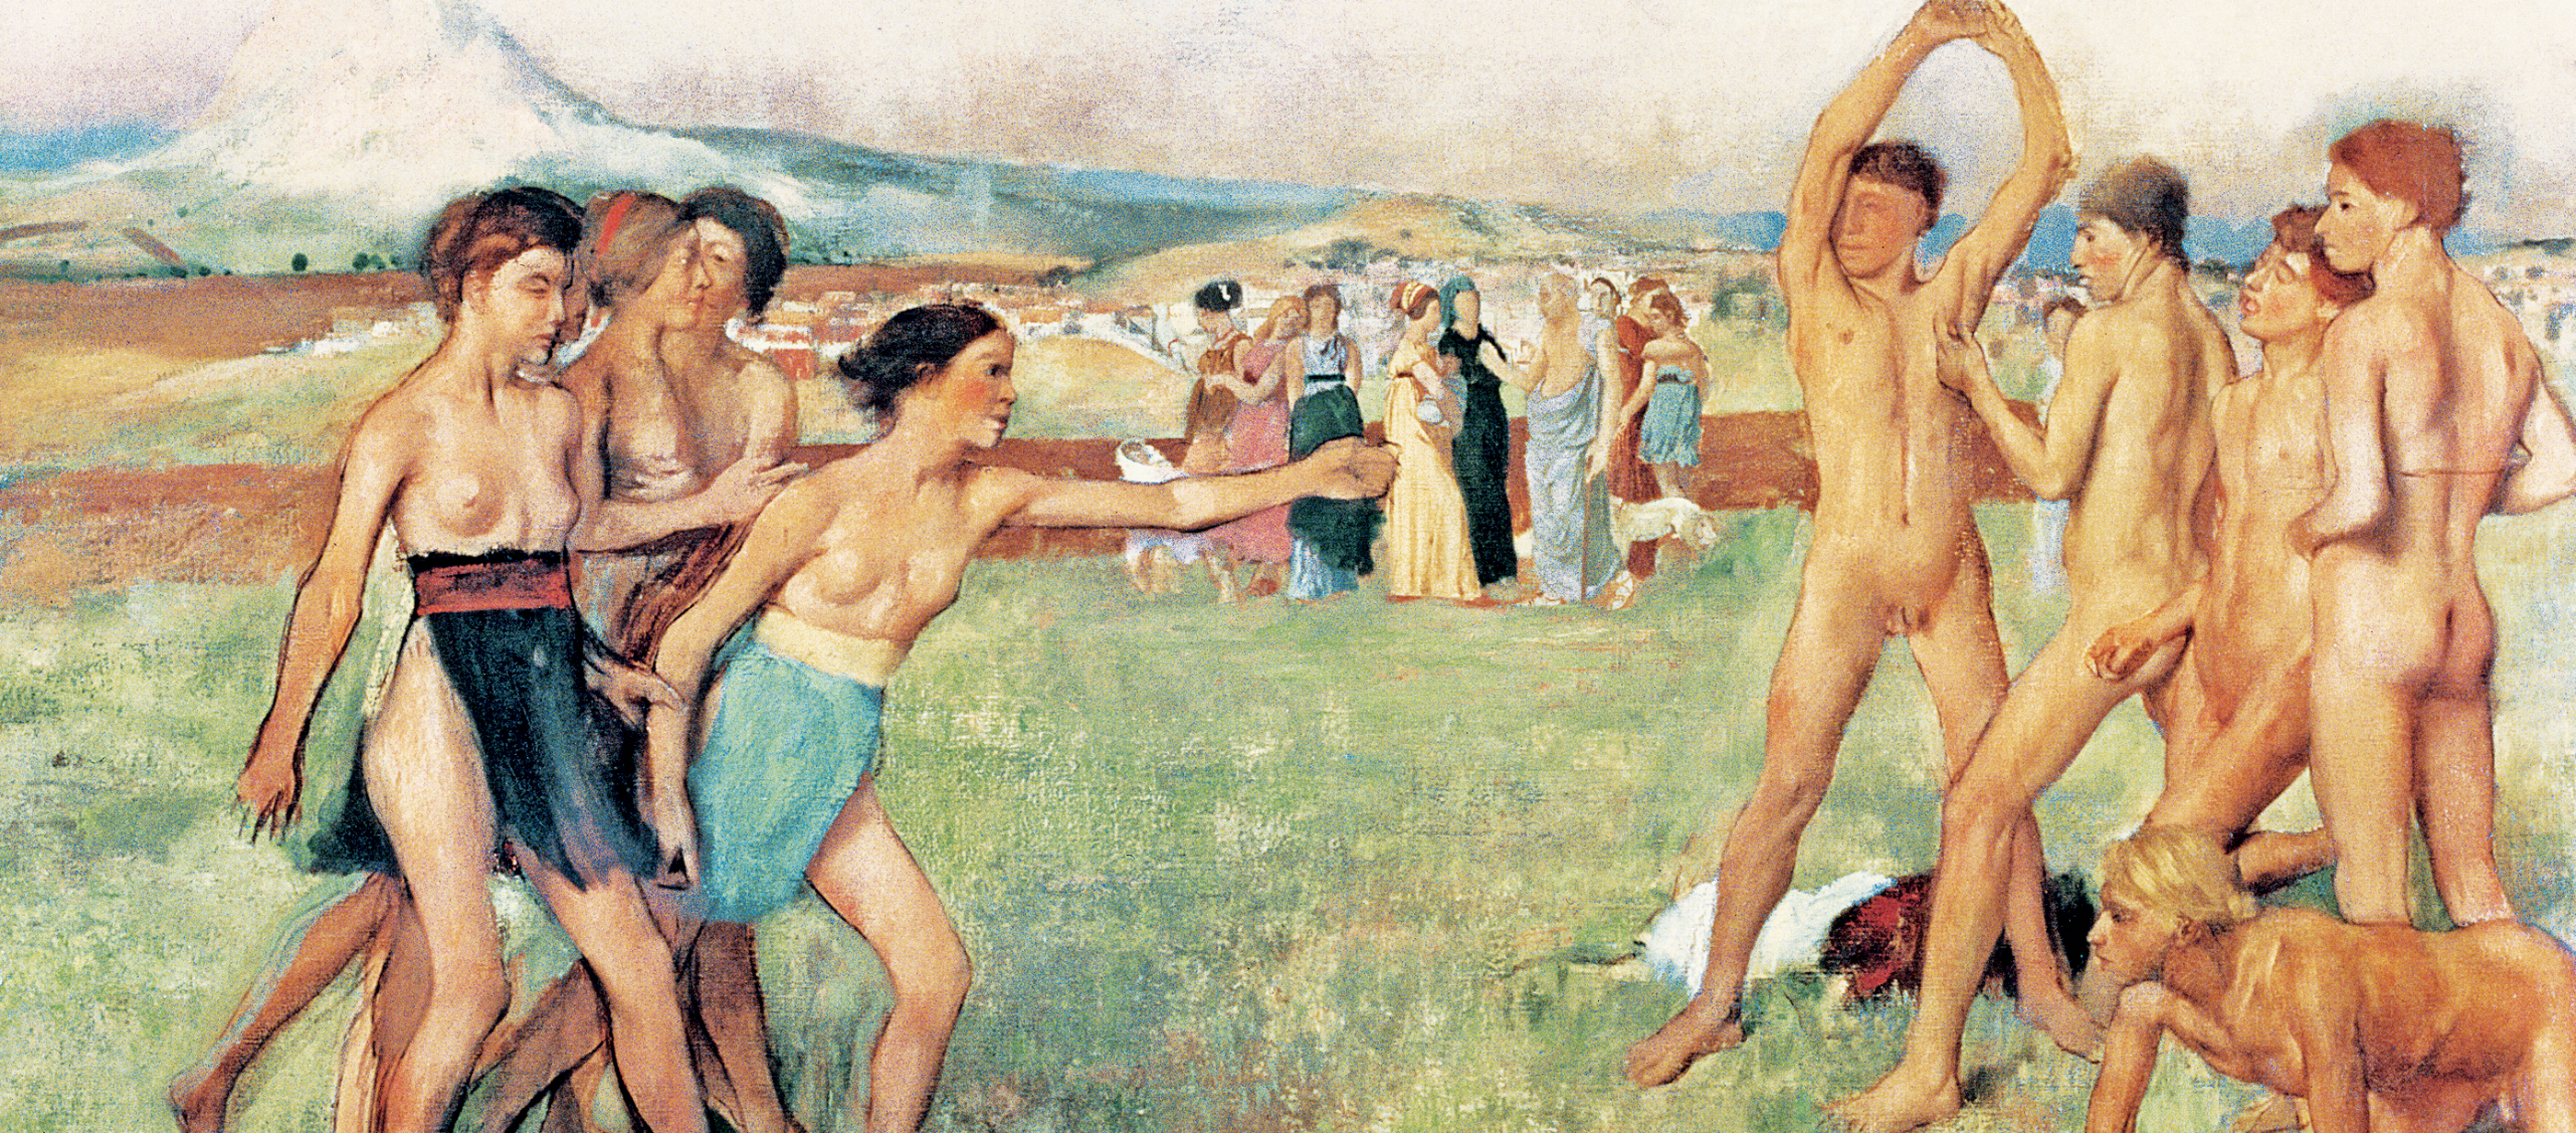 Edgar Degas painting showing young Spartans exercising.